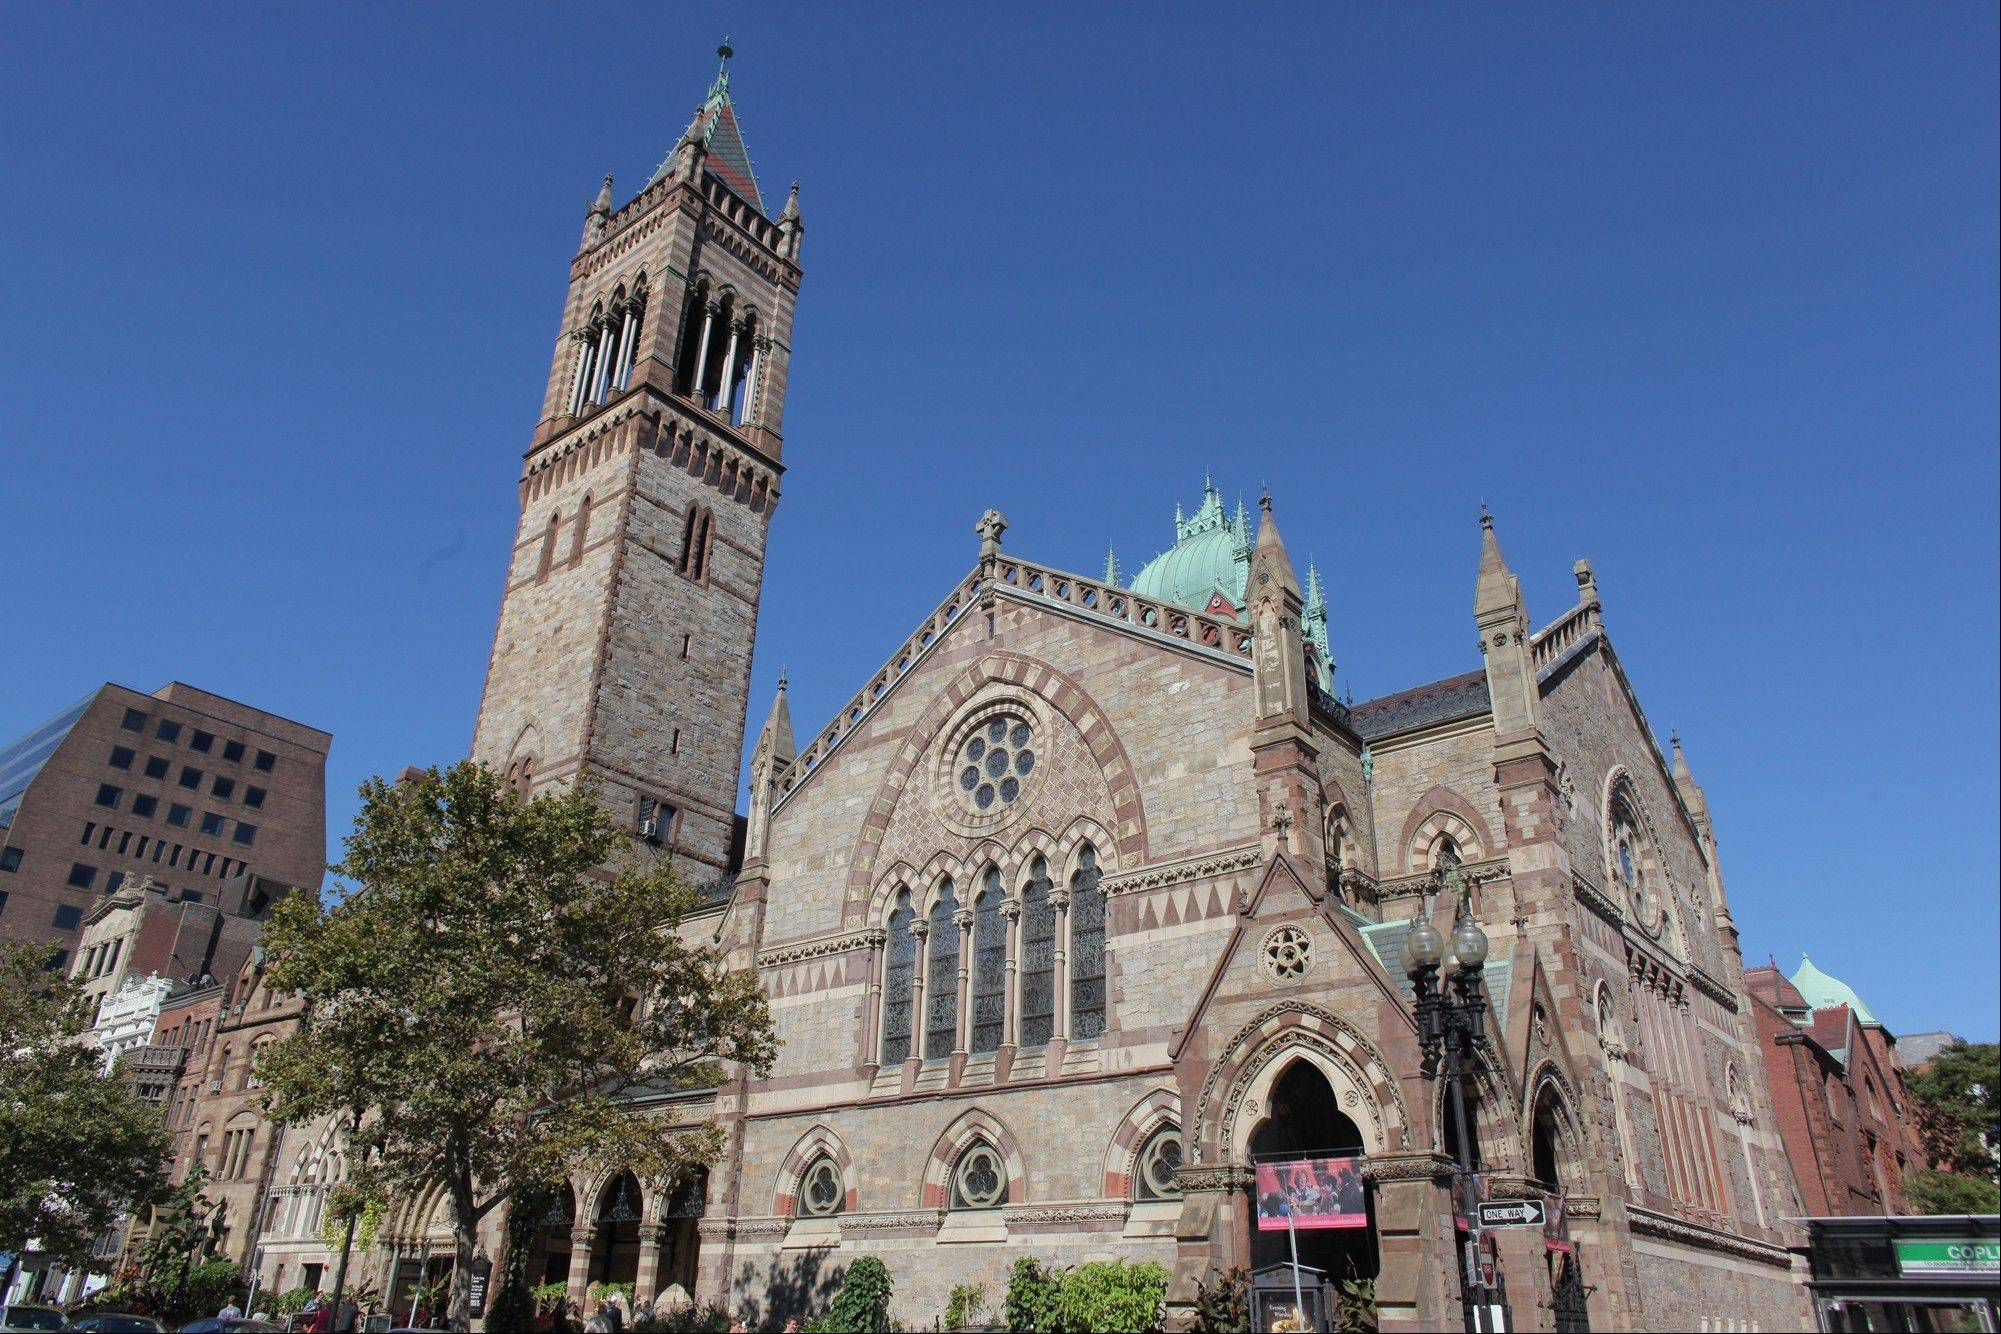 The Old South Church in Boston owns two 1640 copies of the Bay Psalm Book, and is selling one copy of the hymnal which experts believe to be the first book ever printed in what is now the United States.